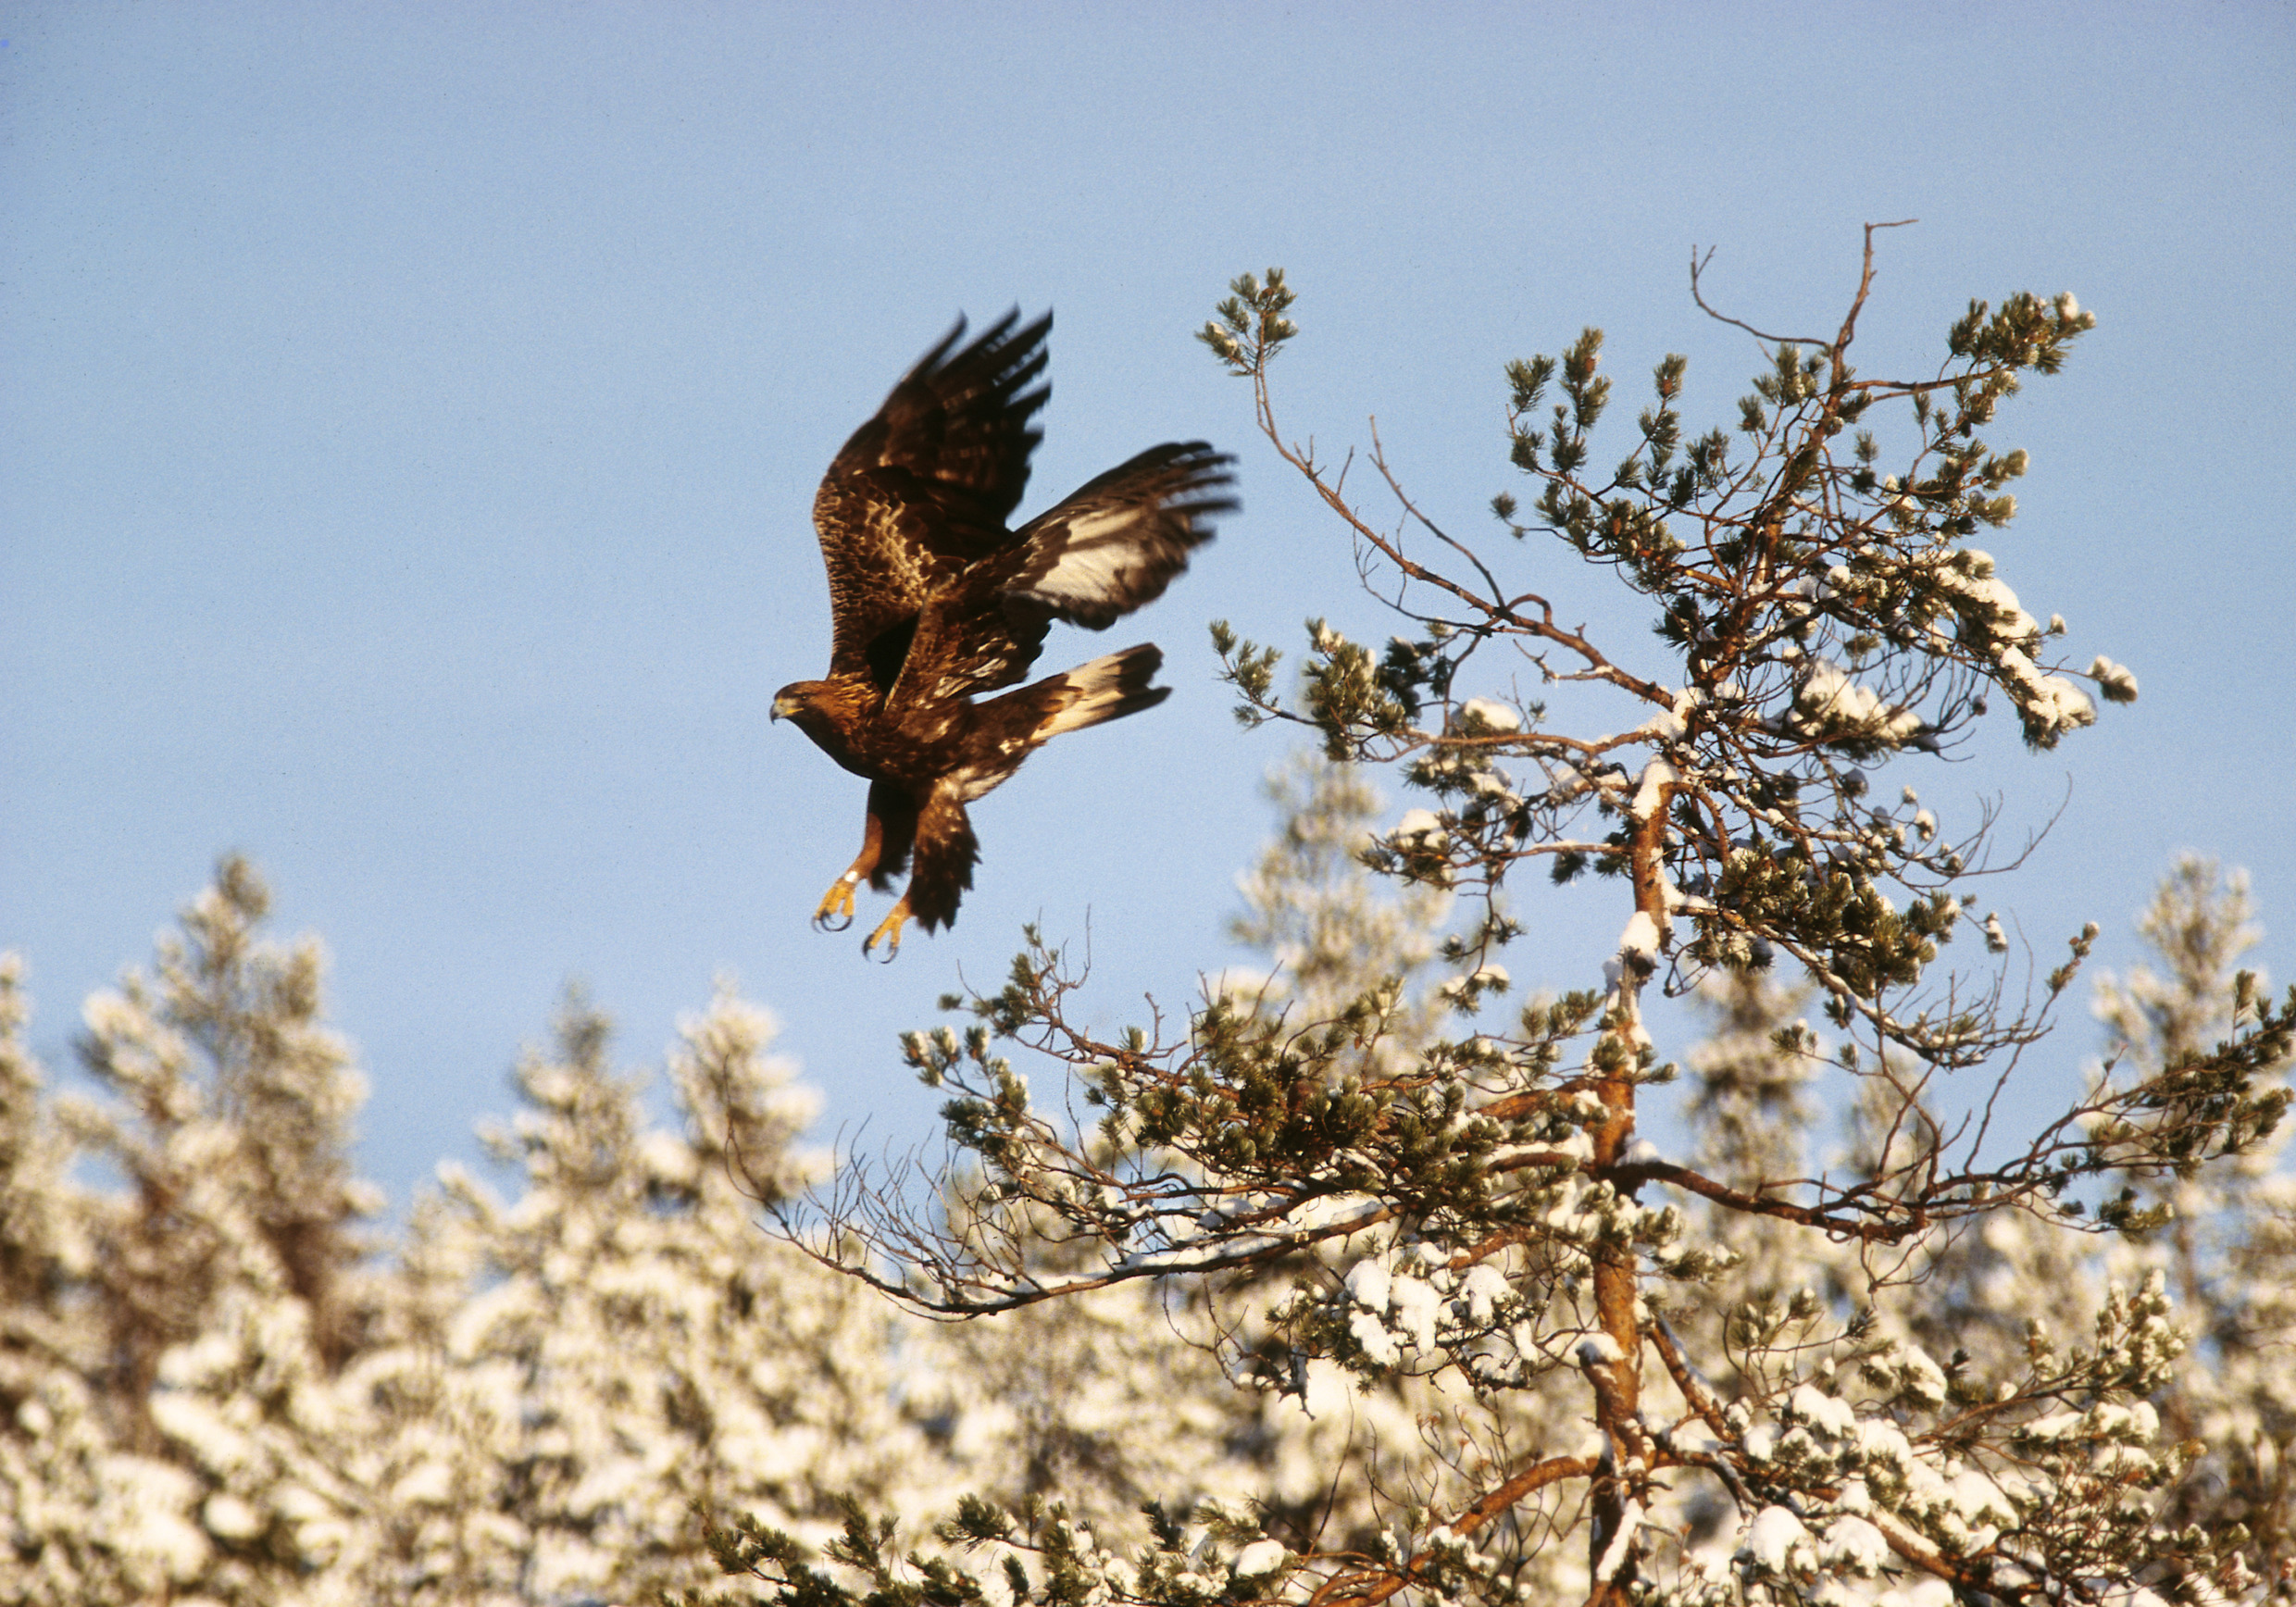 håkan_vargas_s-golden_eagle_-2037.jpg